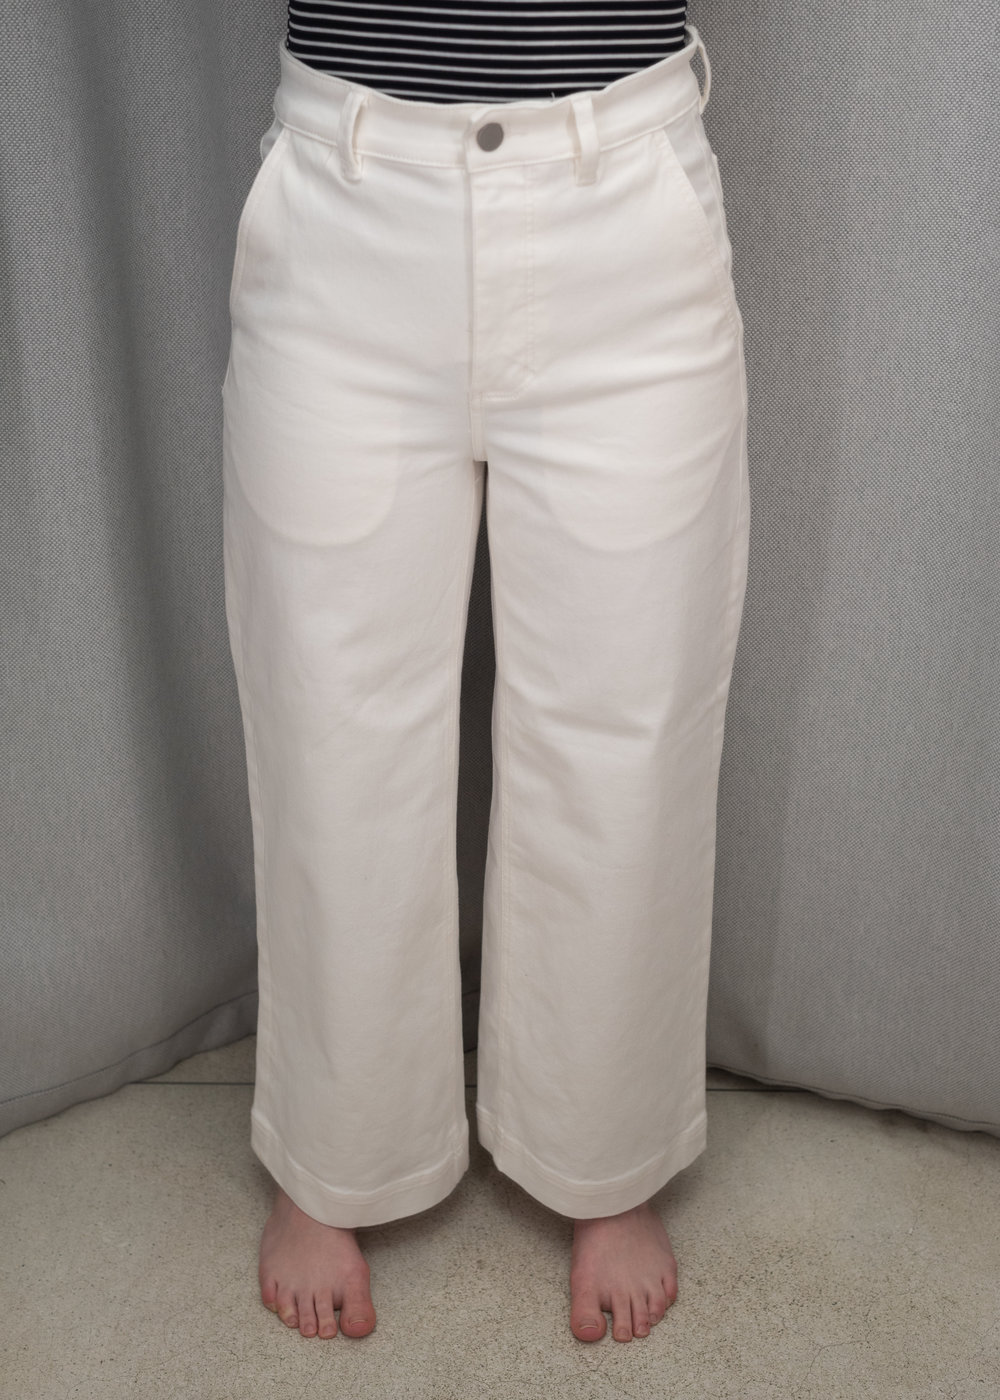 Everlane The Wide Leg Crop Pant - Size 4 - Front View